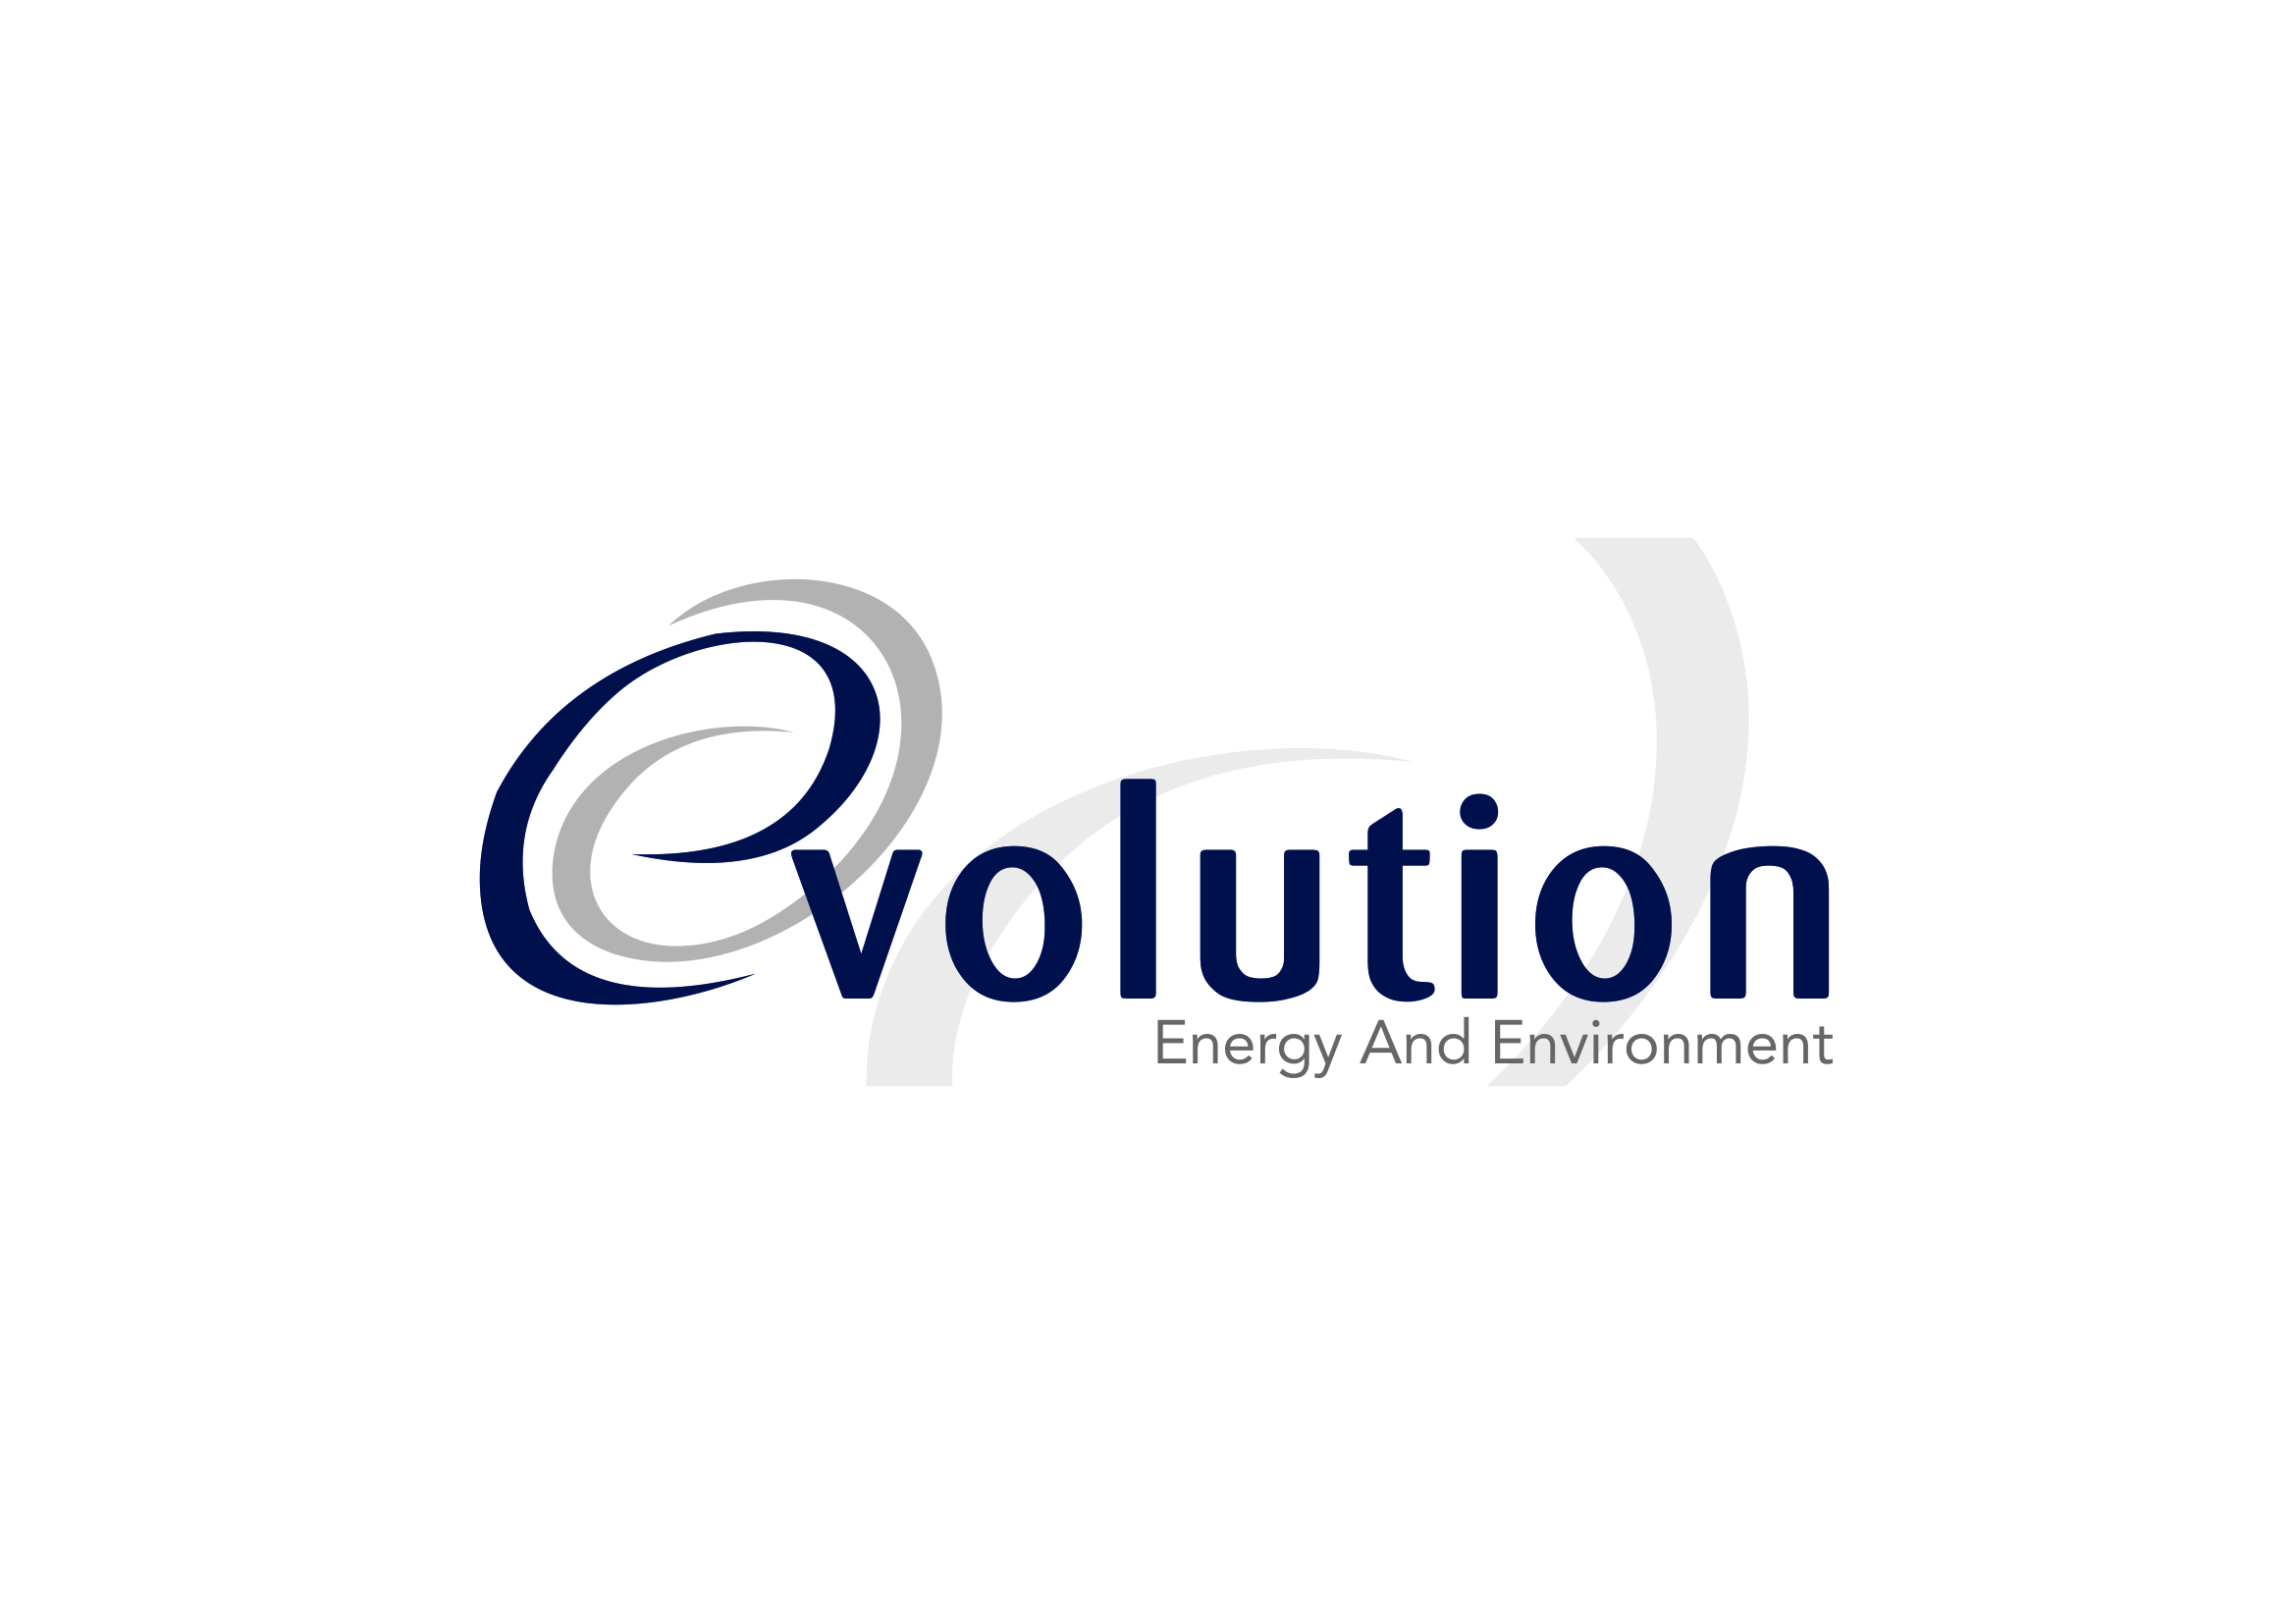 Evolution Energy and Environment